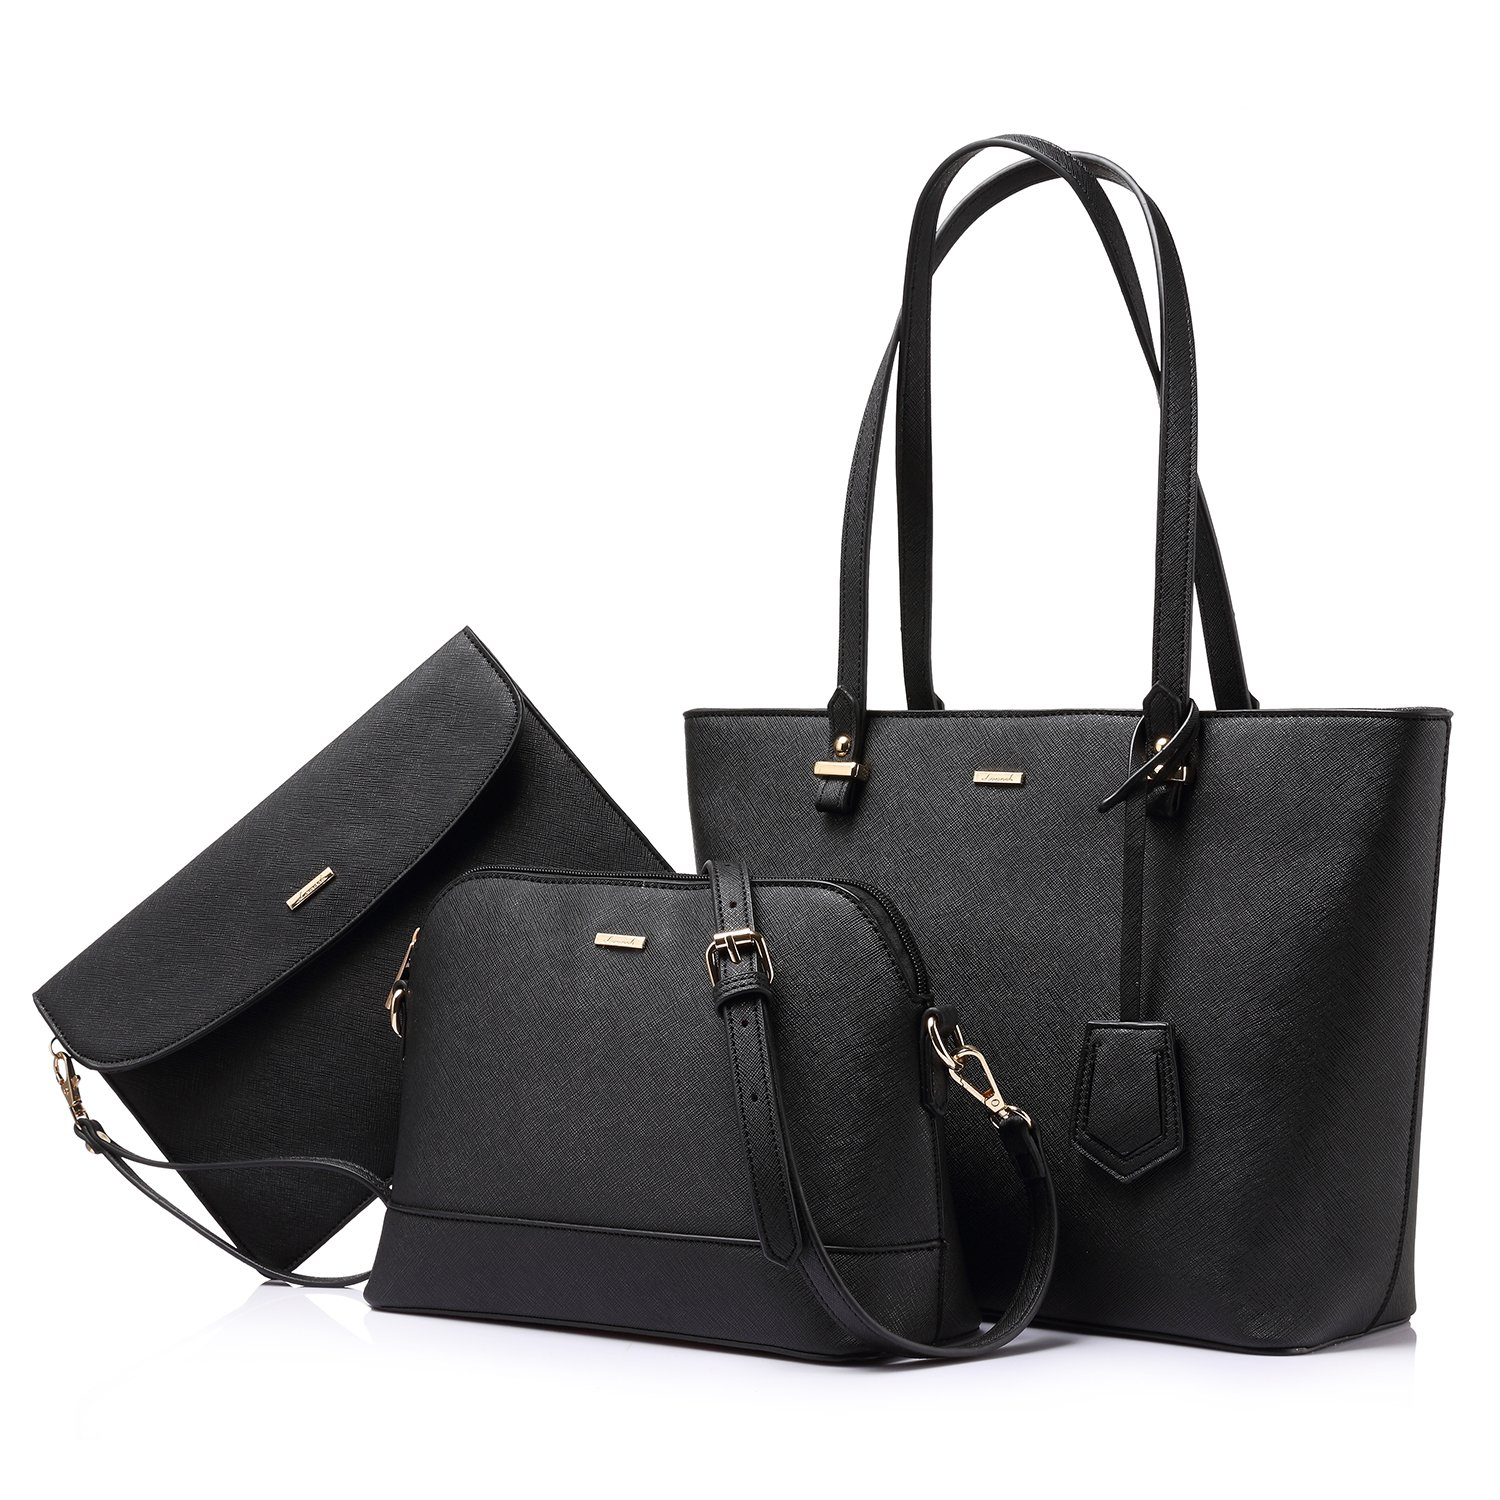 Amazon.com  Handbags for Women Shoulder Bags Tote Satchel Hobo 3pcs Purse  Set Black  Shoes 0cf7aa697bdac